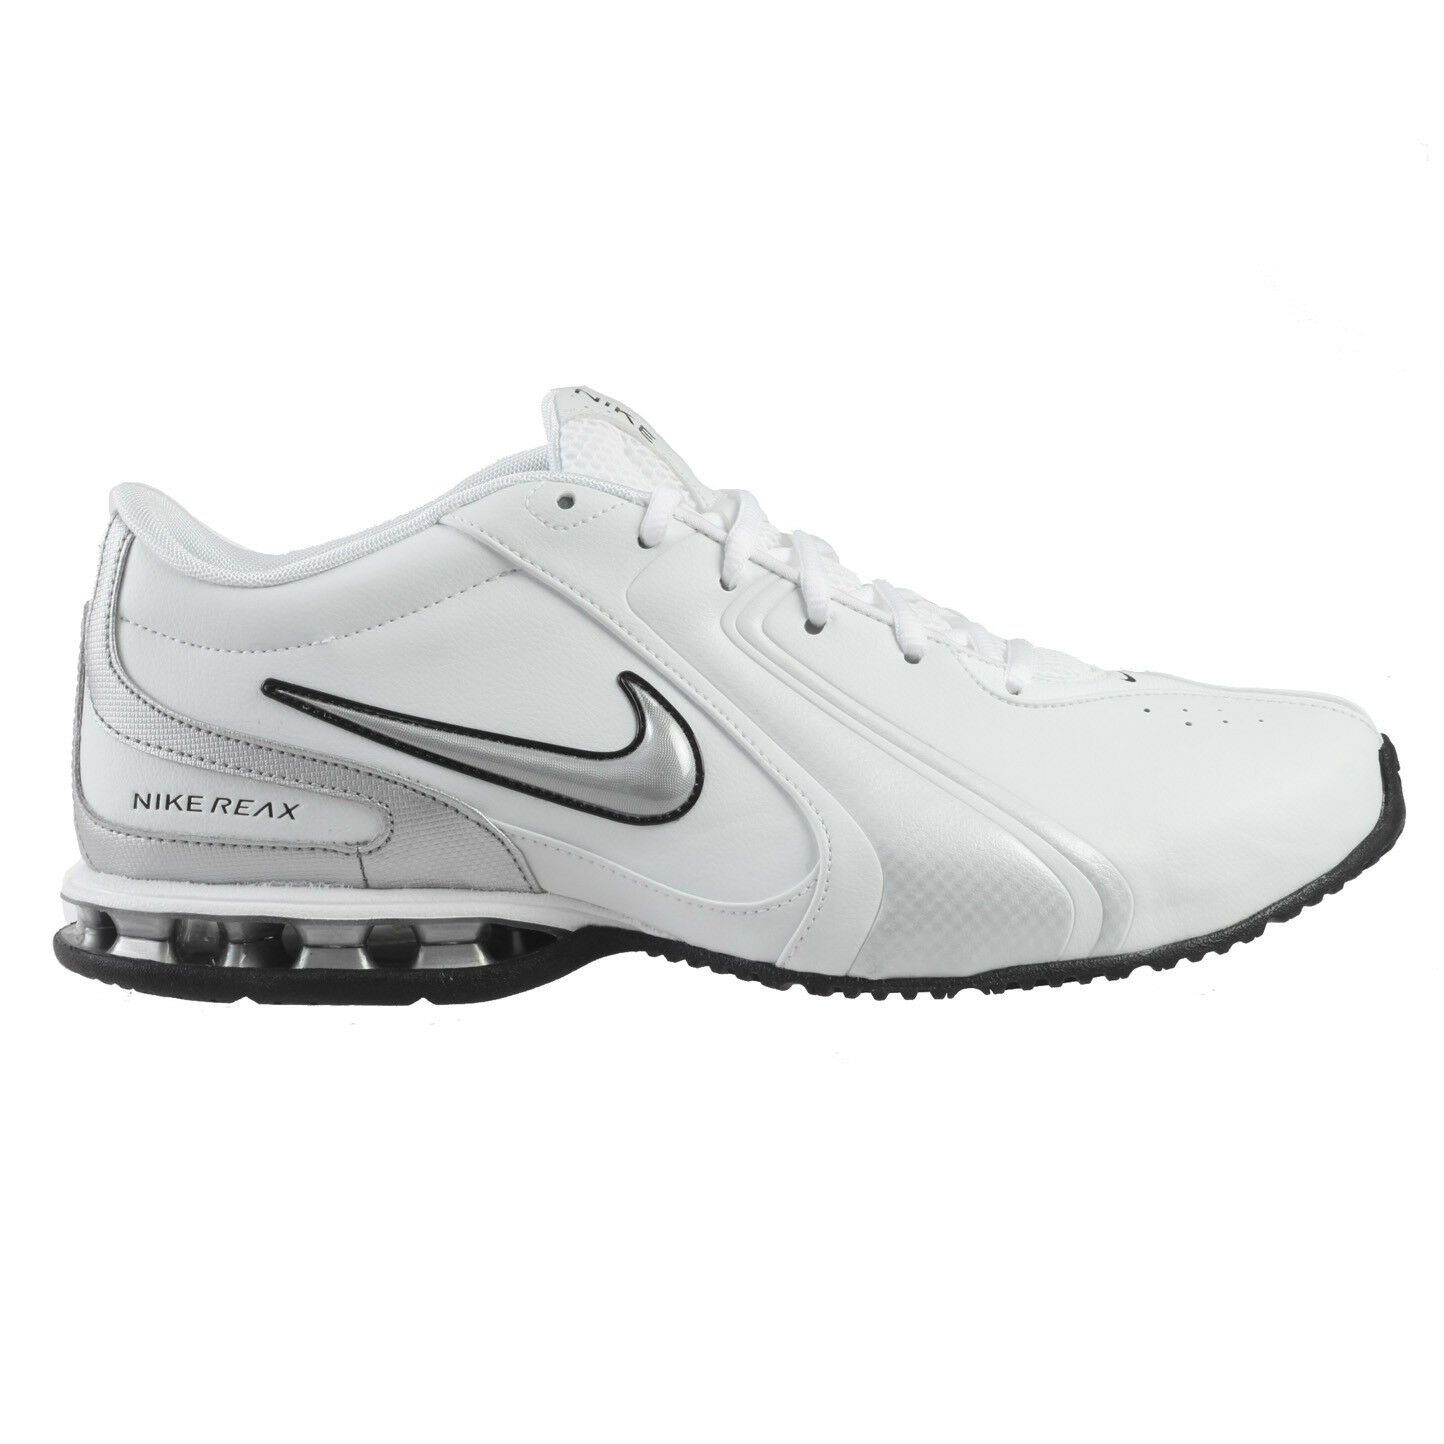 Nike Reax TR III SL Mens 333765-101 White Silver Cross Training Shoes Size 10